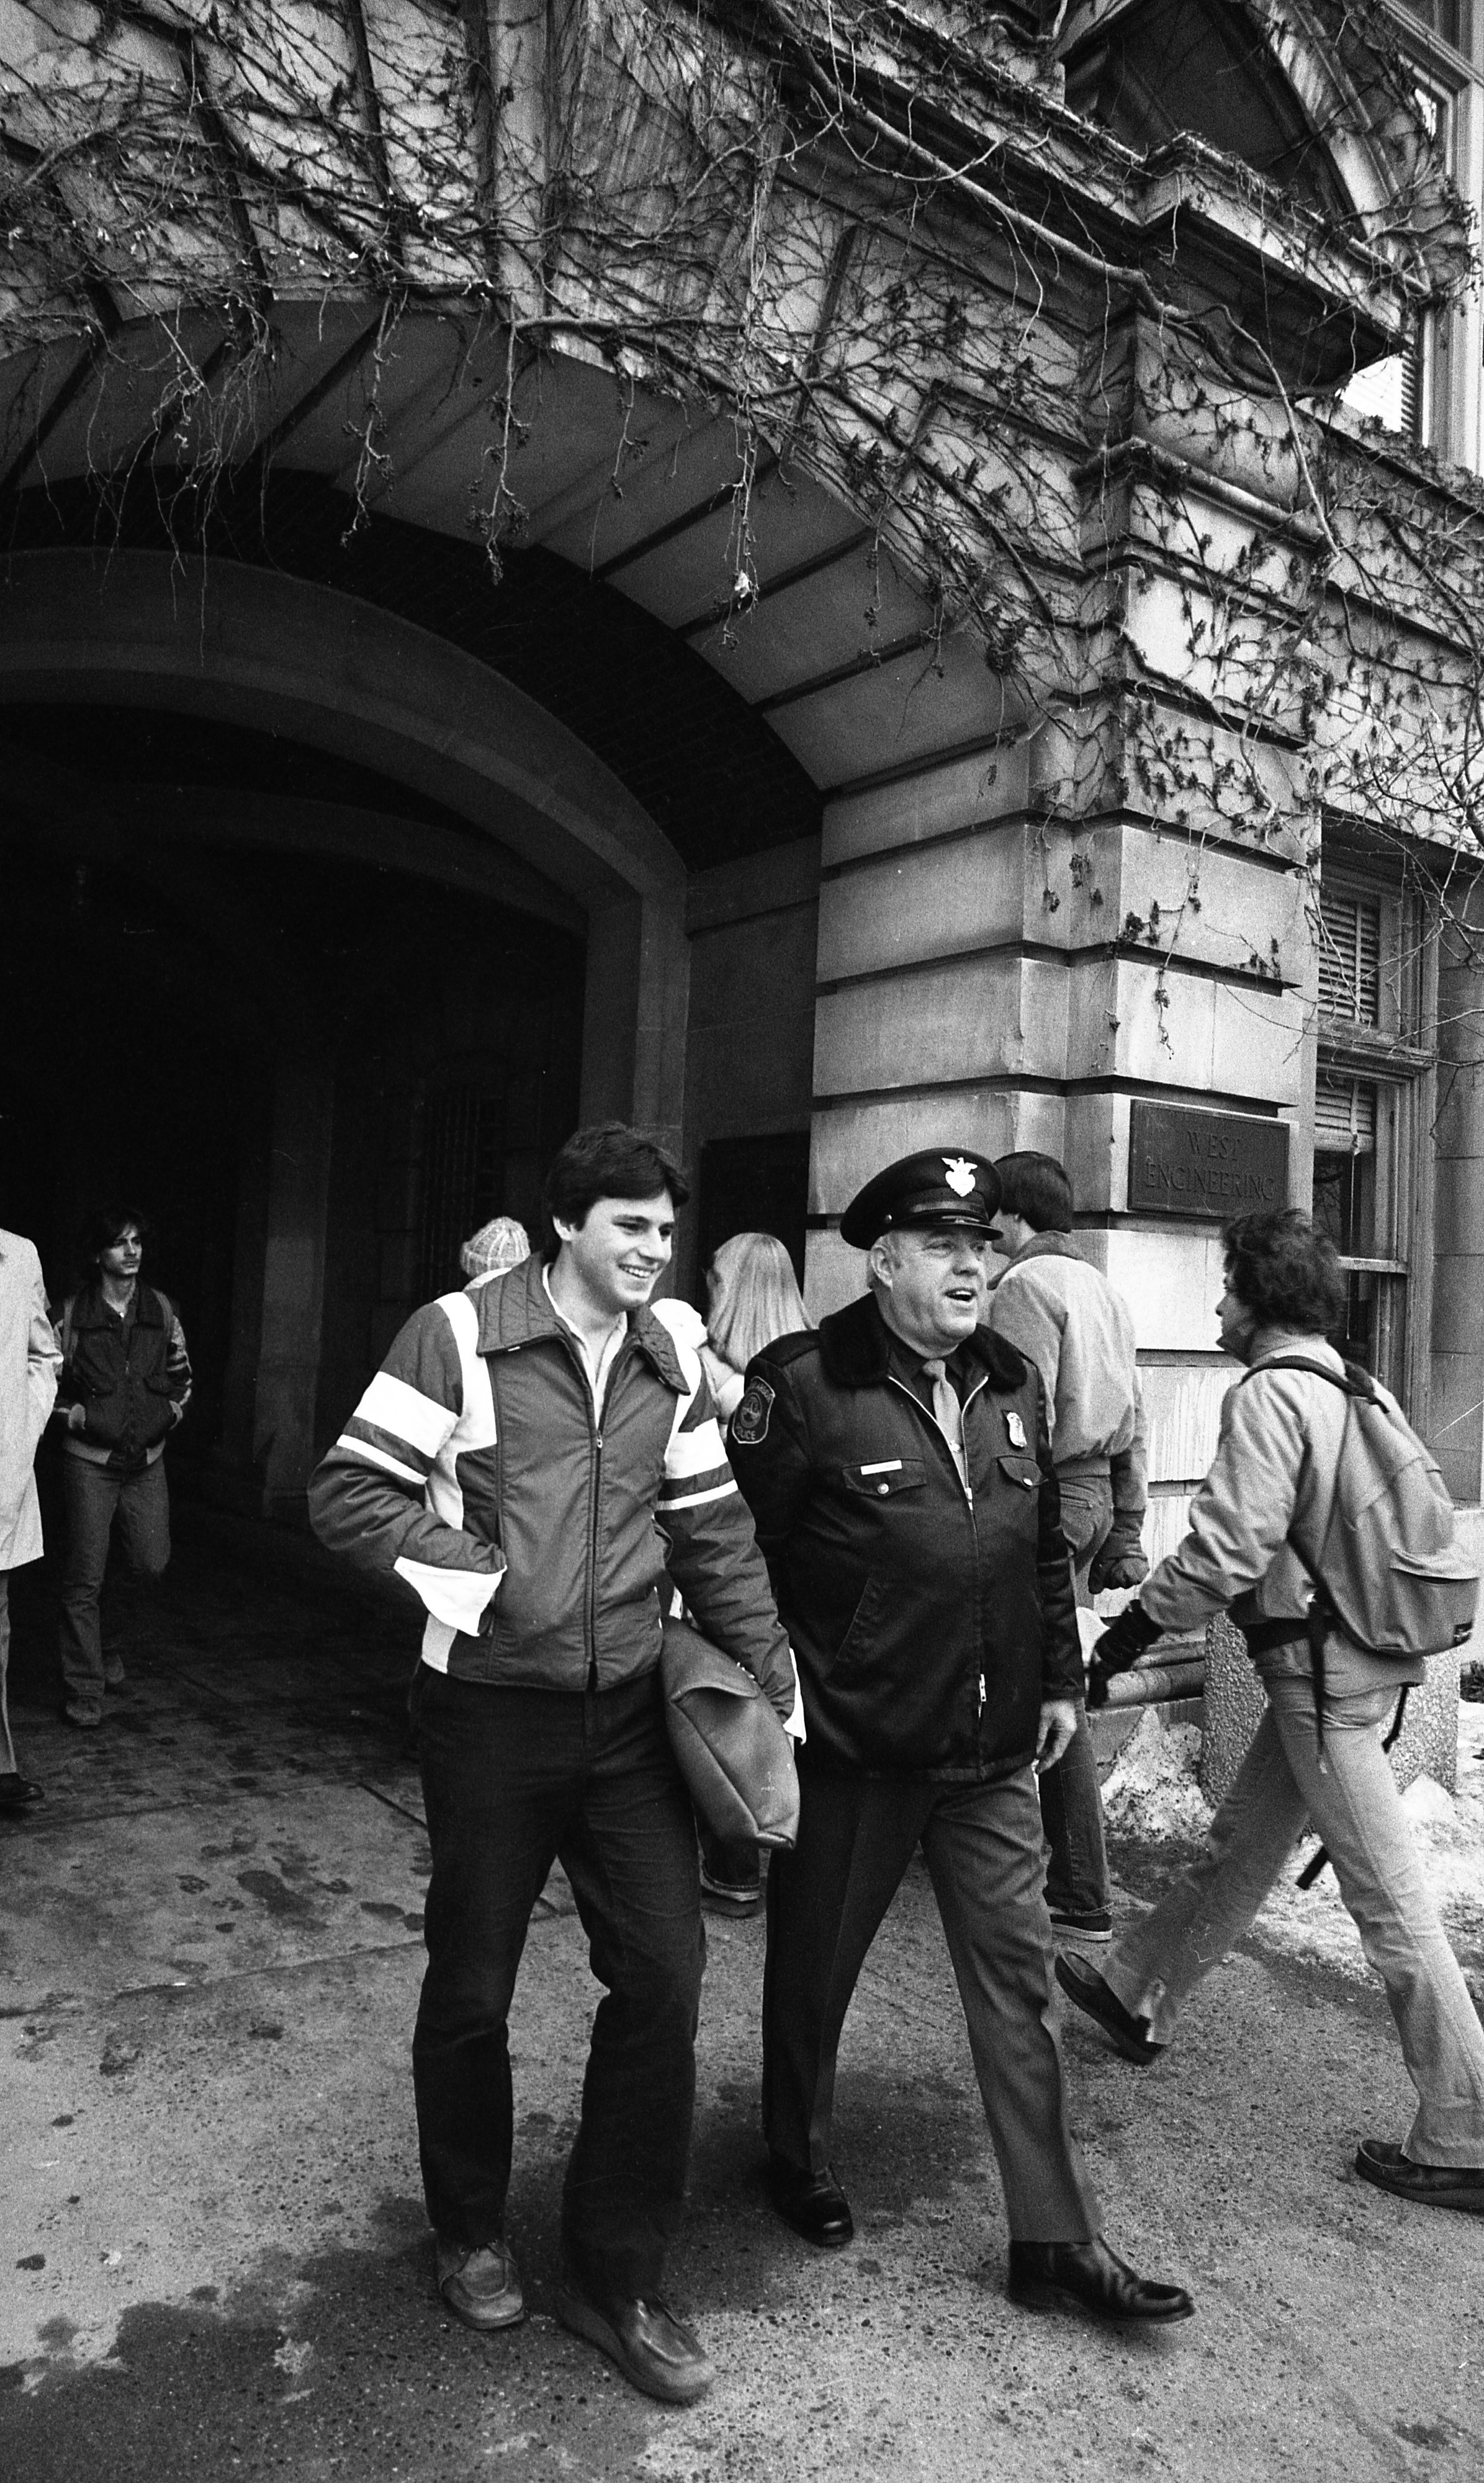 Ann Arbor Police Officer Charles V. Fleming Walks & Talks With University of Michigan Students, January 1981 image